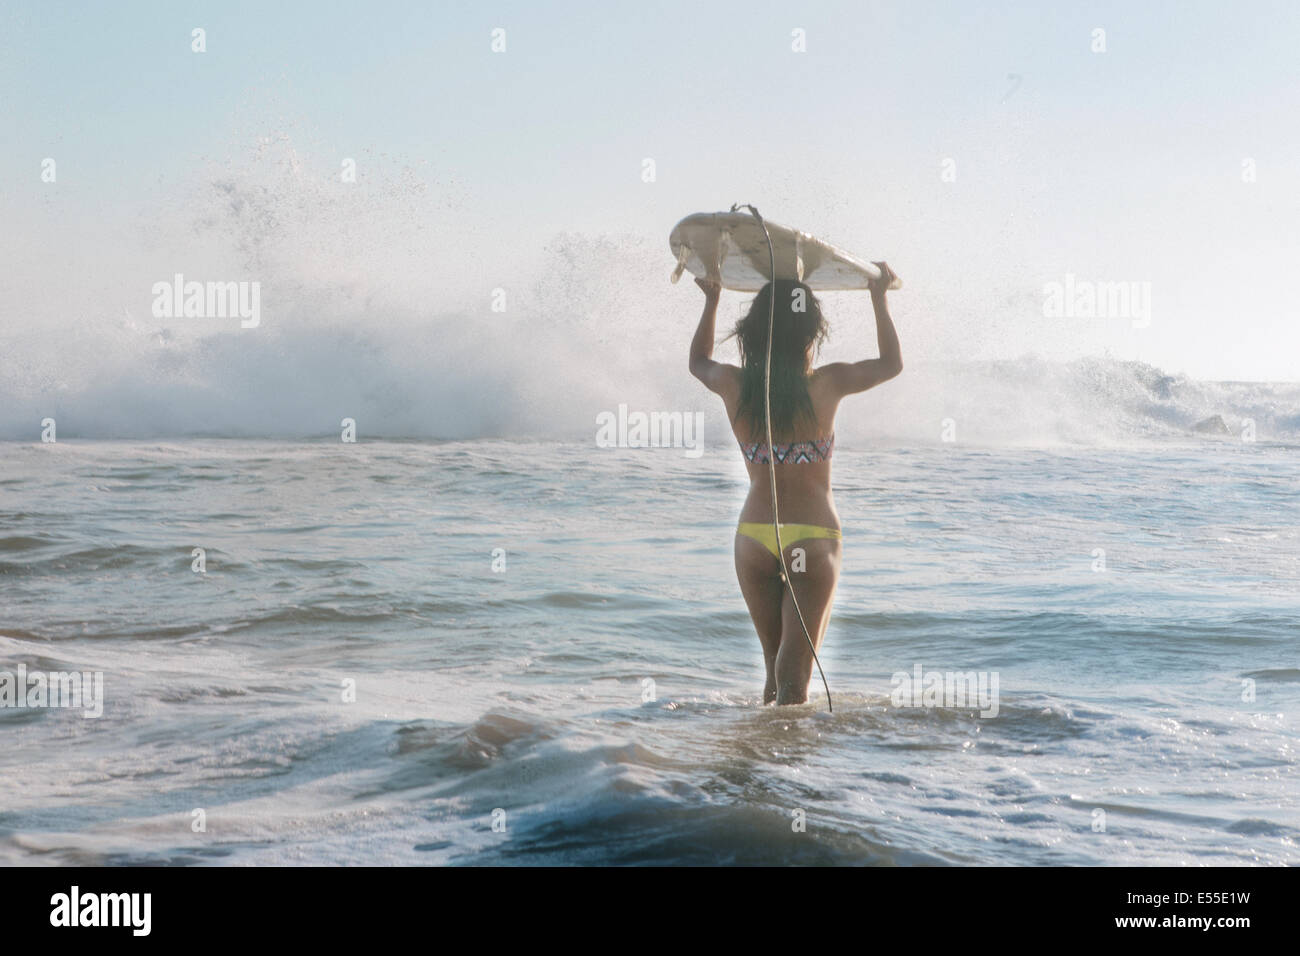 Jeune femme surfer carrying surfboard on head à marcher vers le fracas des vagues Photo Stock